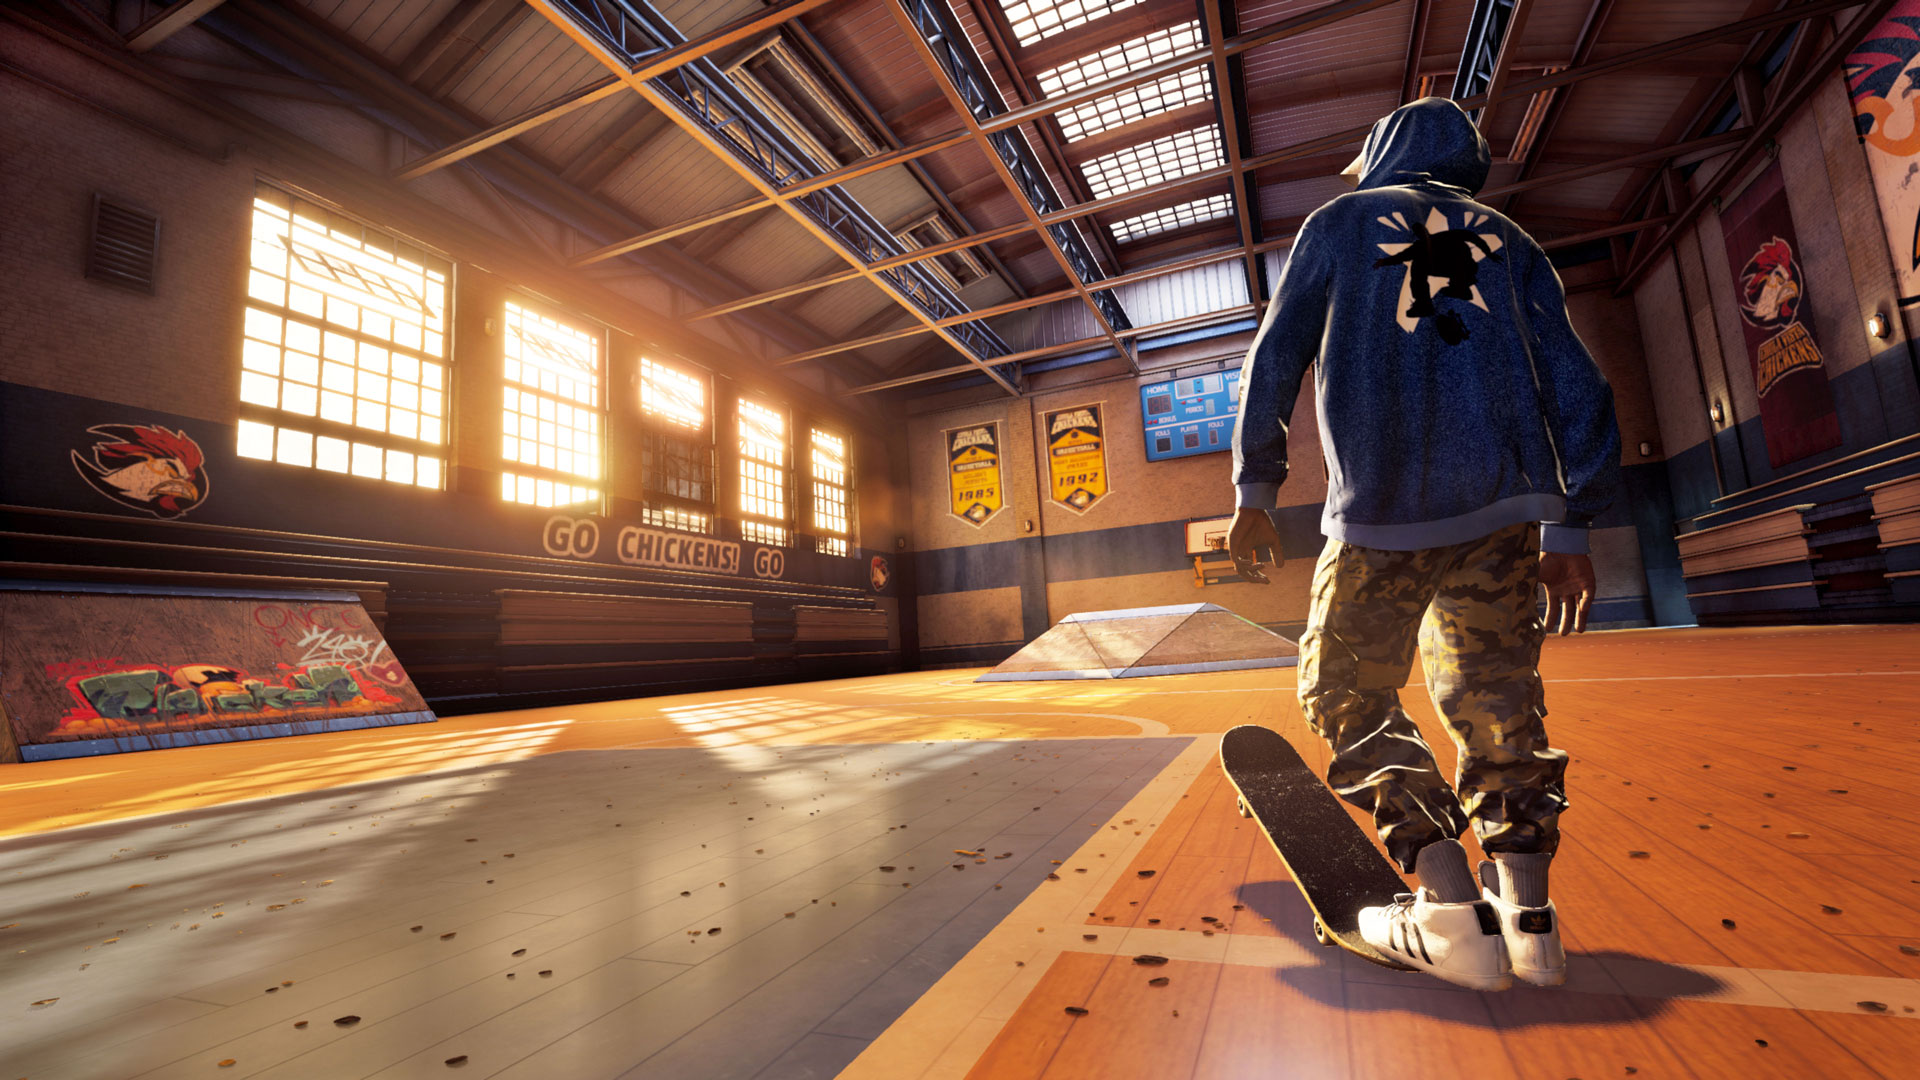 A 900-Degree Look at Tony Hawk's Pro Skater 1 and 2's Reveal - Image 2